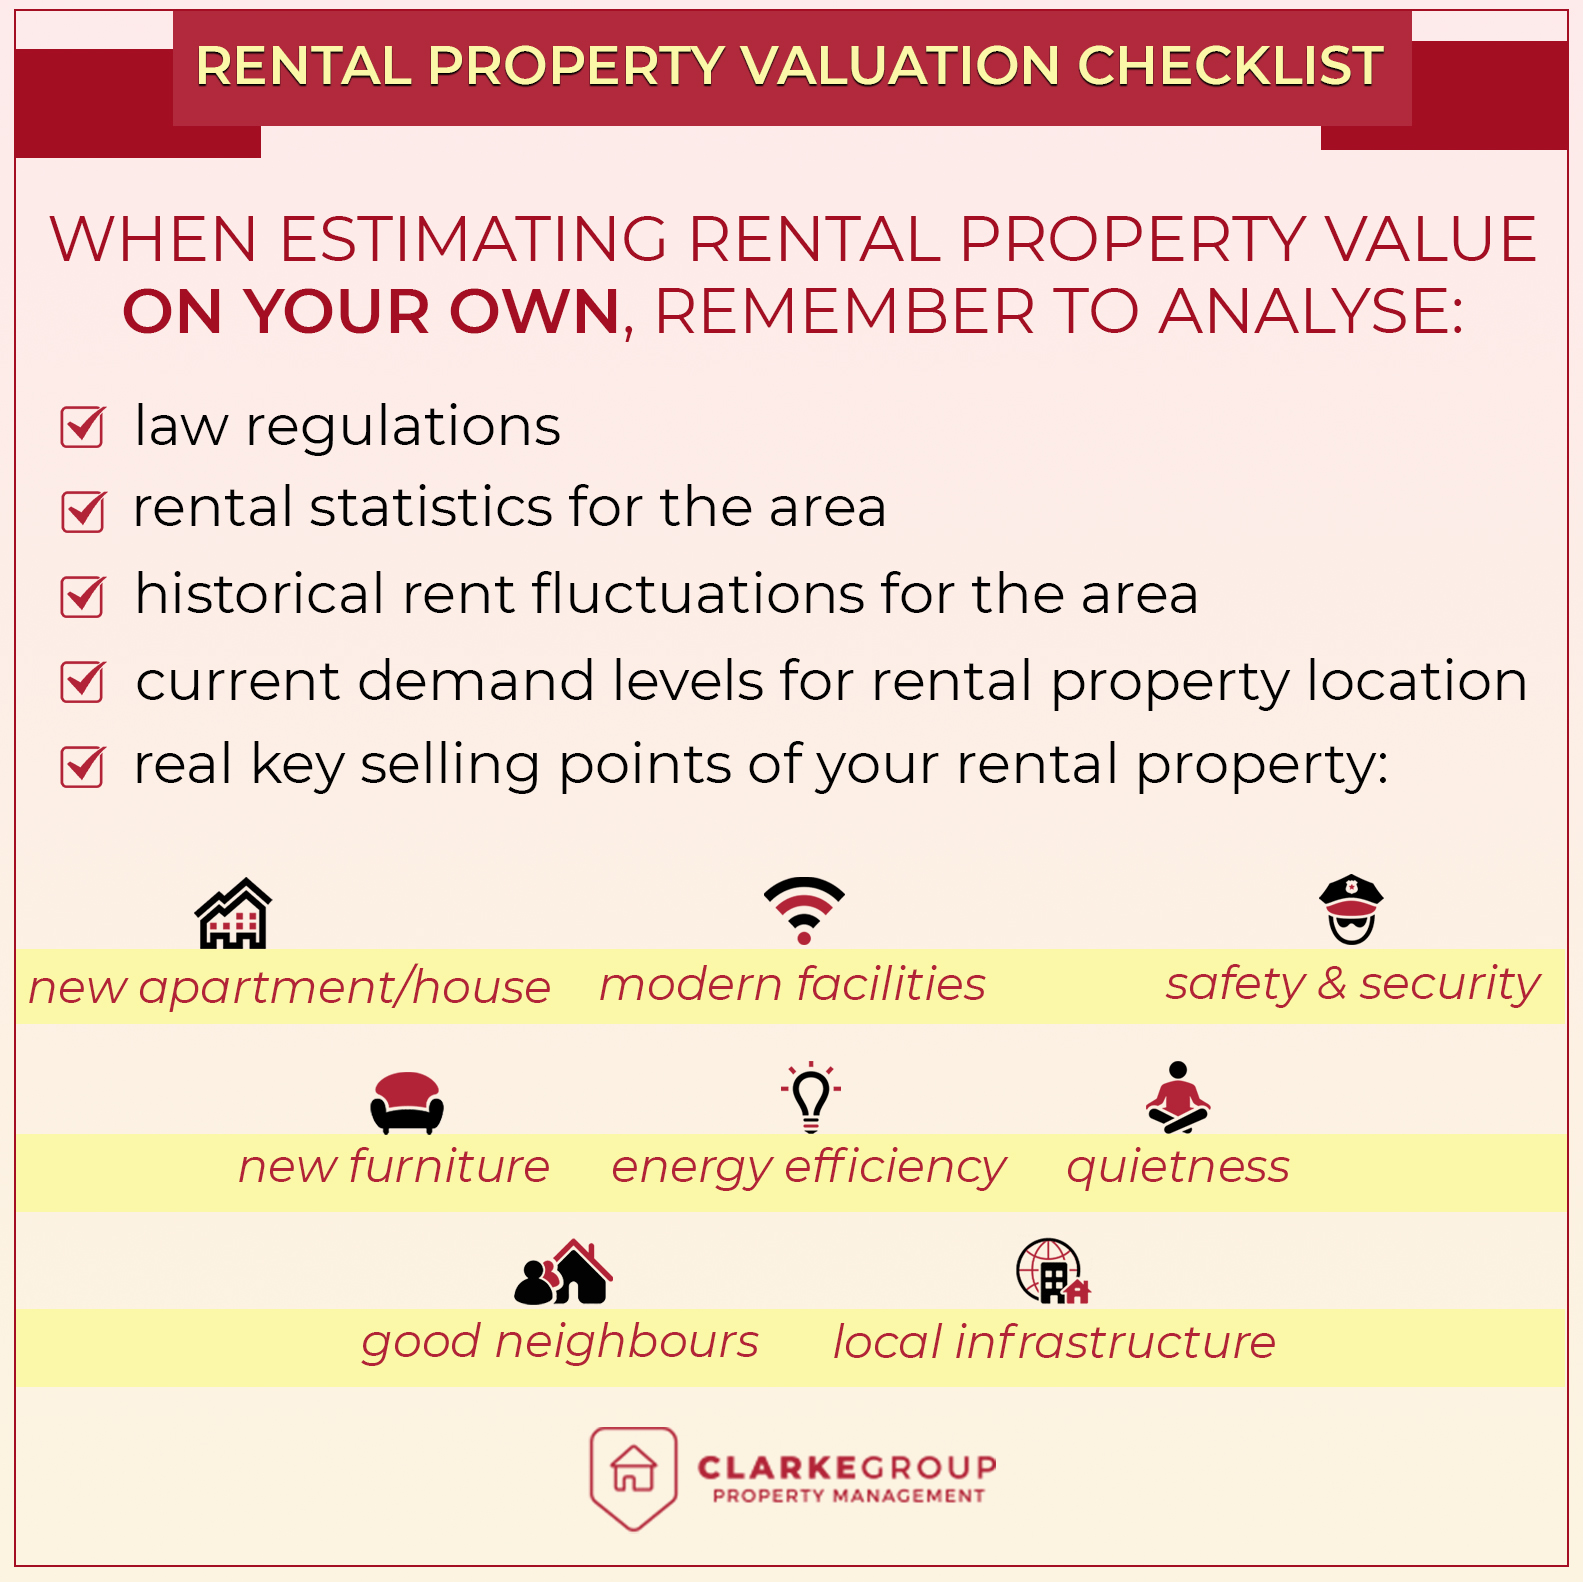 Infographic on property valuation